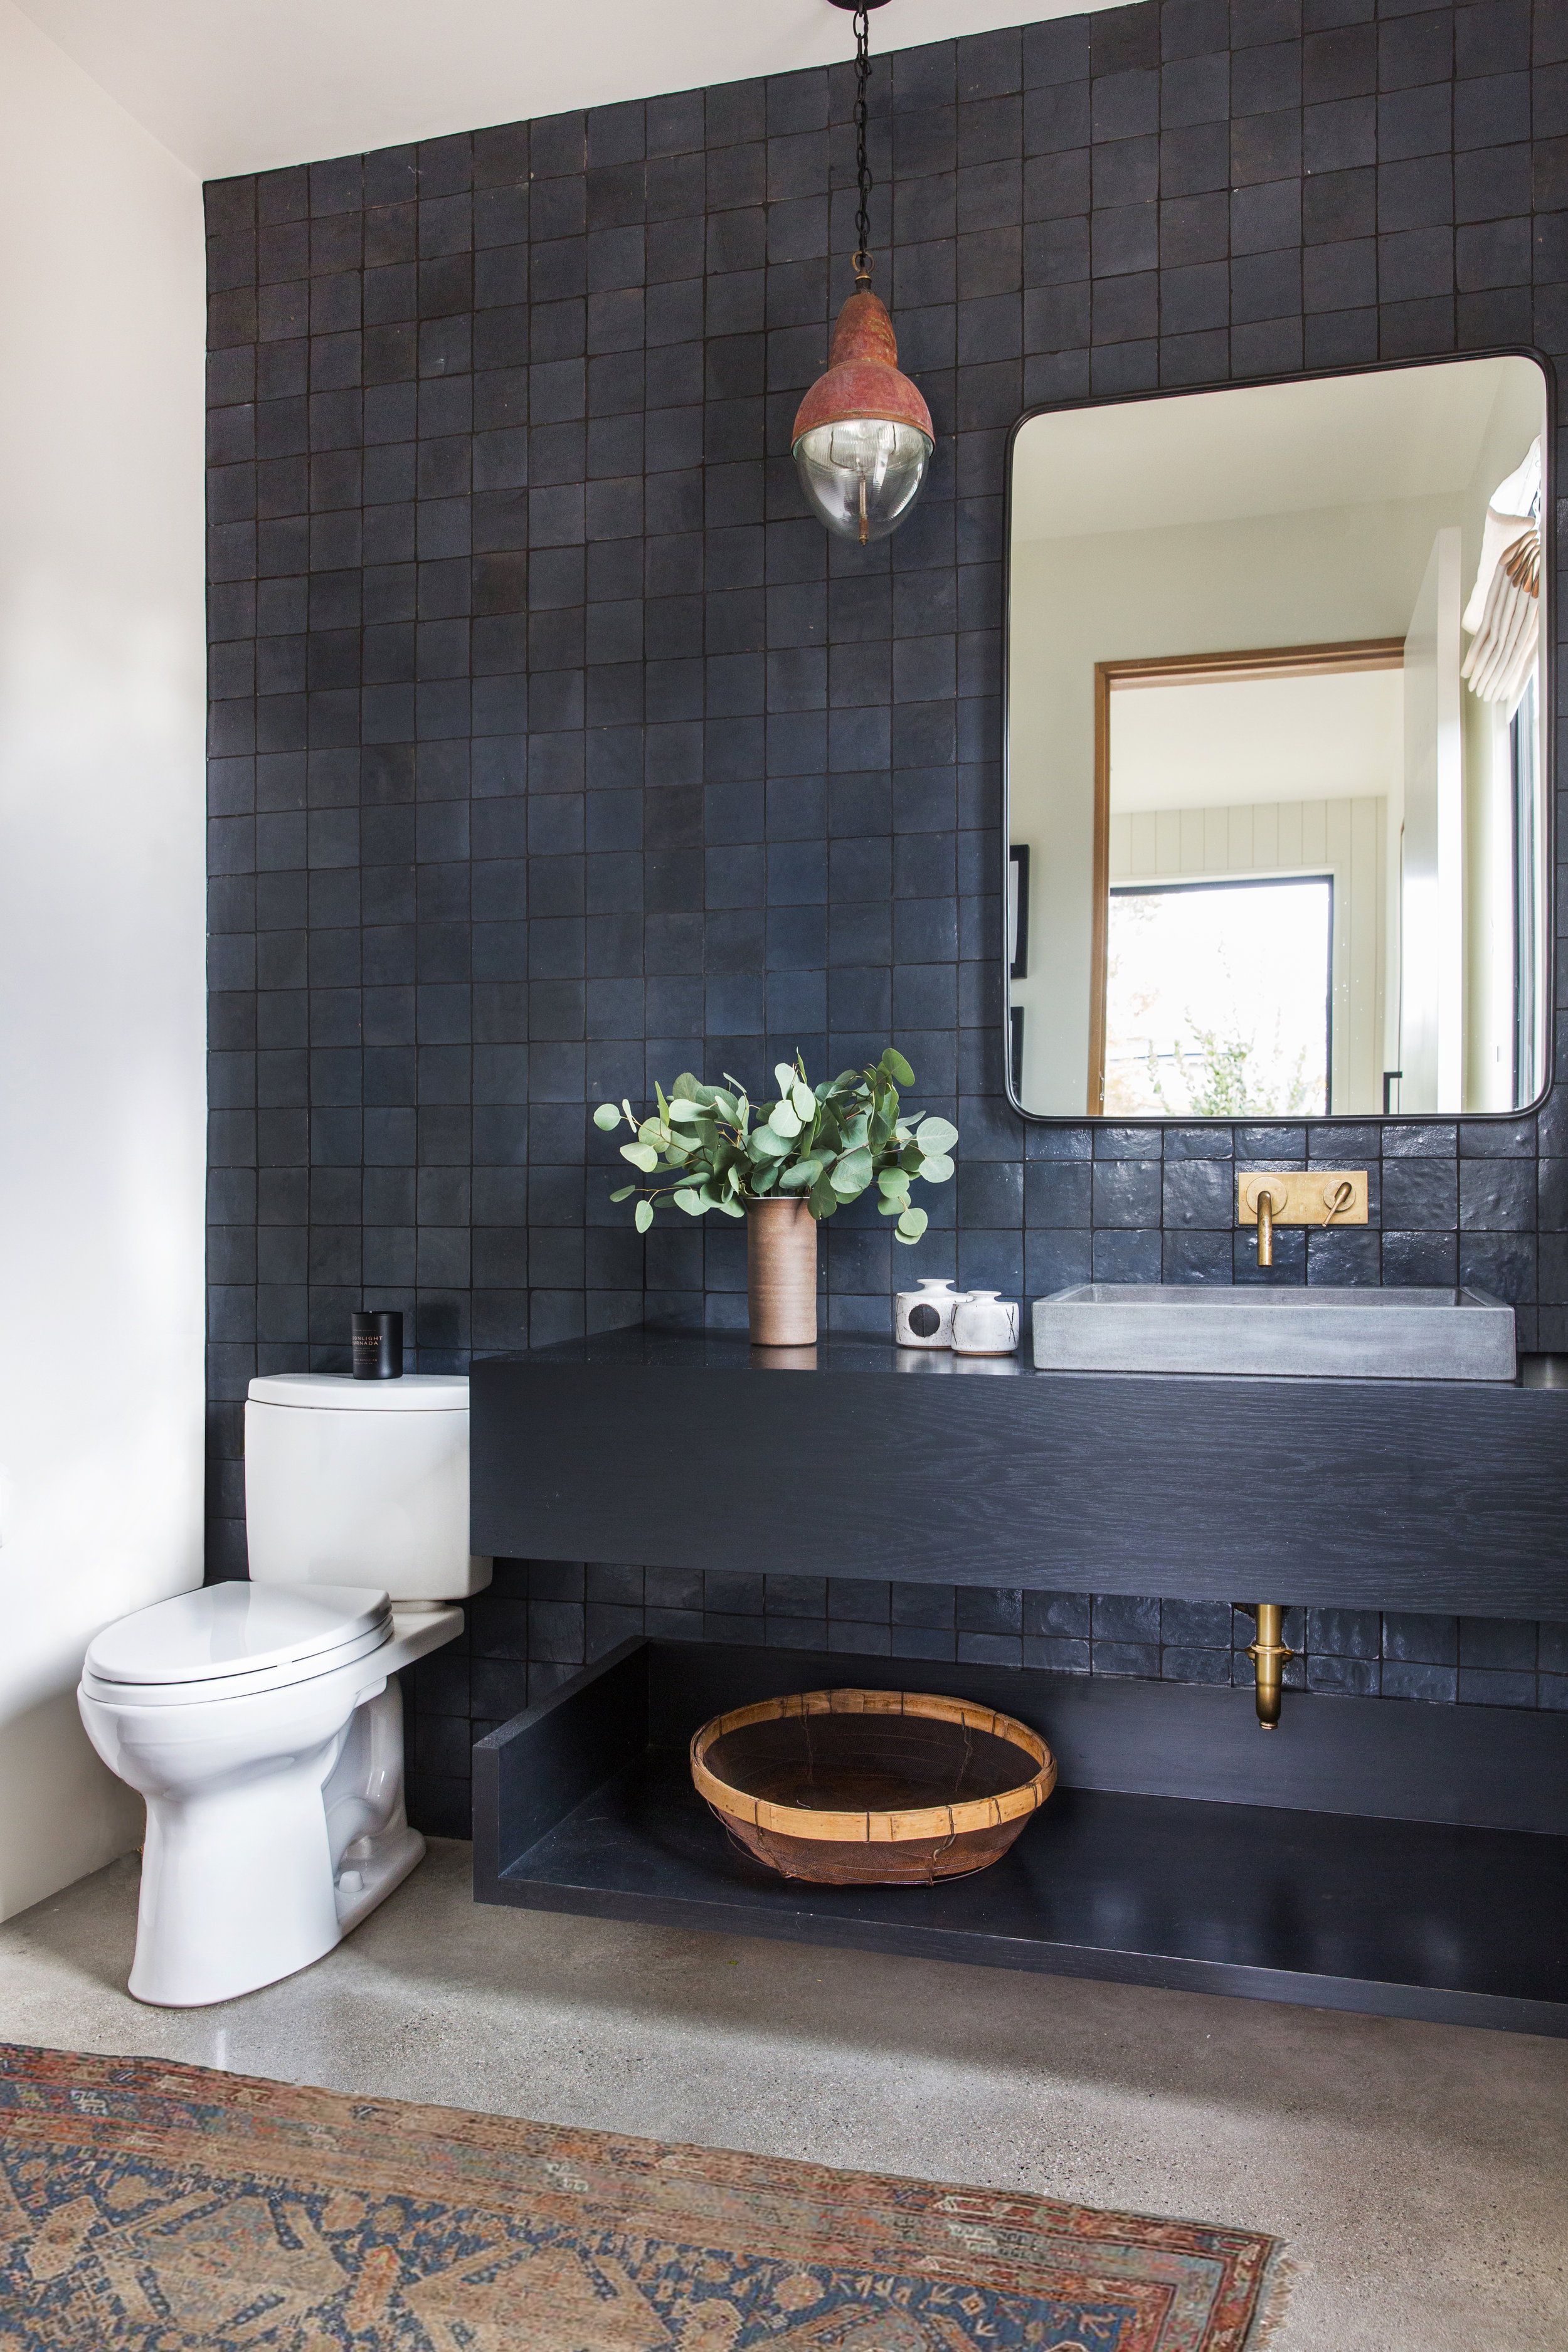 CLASSIC MOROCCAN TILE - Come on, you knew this was coming! You can't have a modern moroccan home without the classic moroccan tile…Amber Interiors kept it moody with this choice of a charcoal color in the powder room vanity wall, and we think it couldn't be more perfect!Image by Amber Interiors